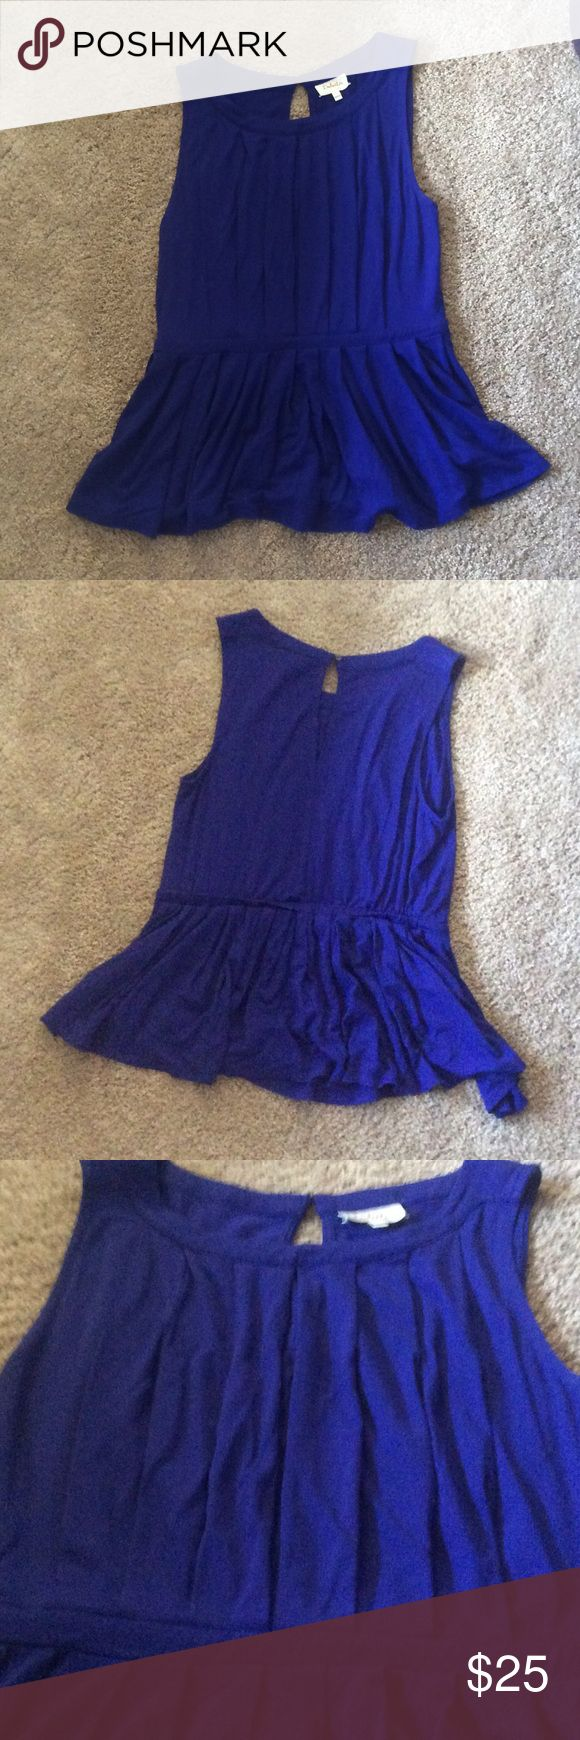 Jersey pleated peplum sleeveless top Cobalt blue sleeveless peplum top with pleats. Really soft and comfortable. Button closure on back neck area. I got this at Anthropologie and only I've only worn it once or twice. In great condition. Price is firm. Anthropologie Tops Tank Tops